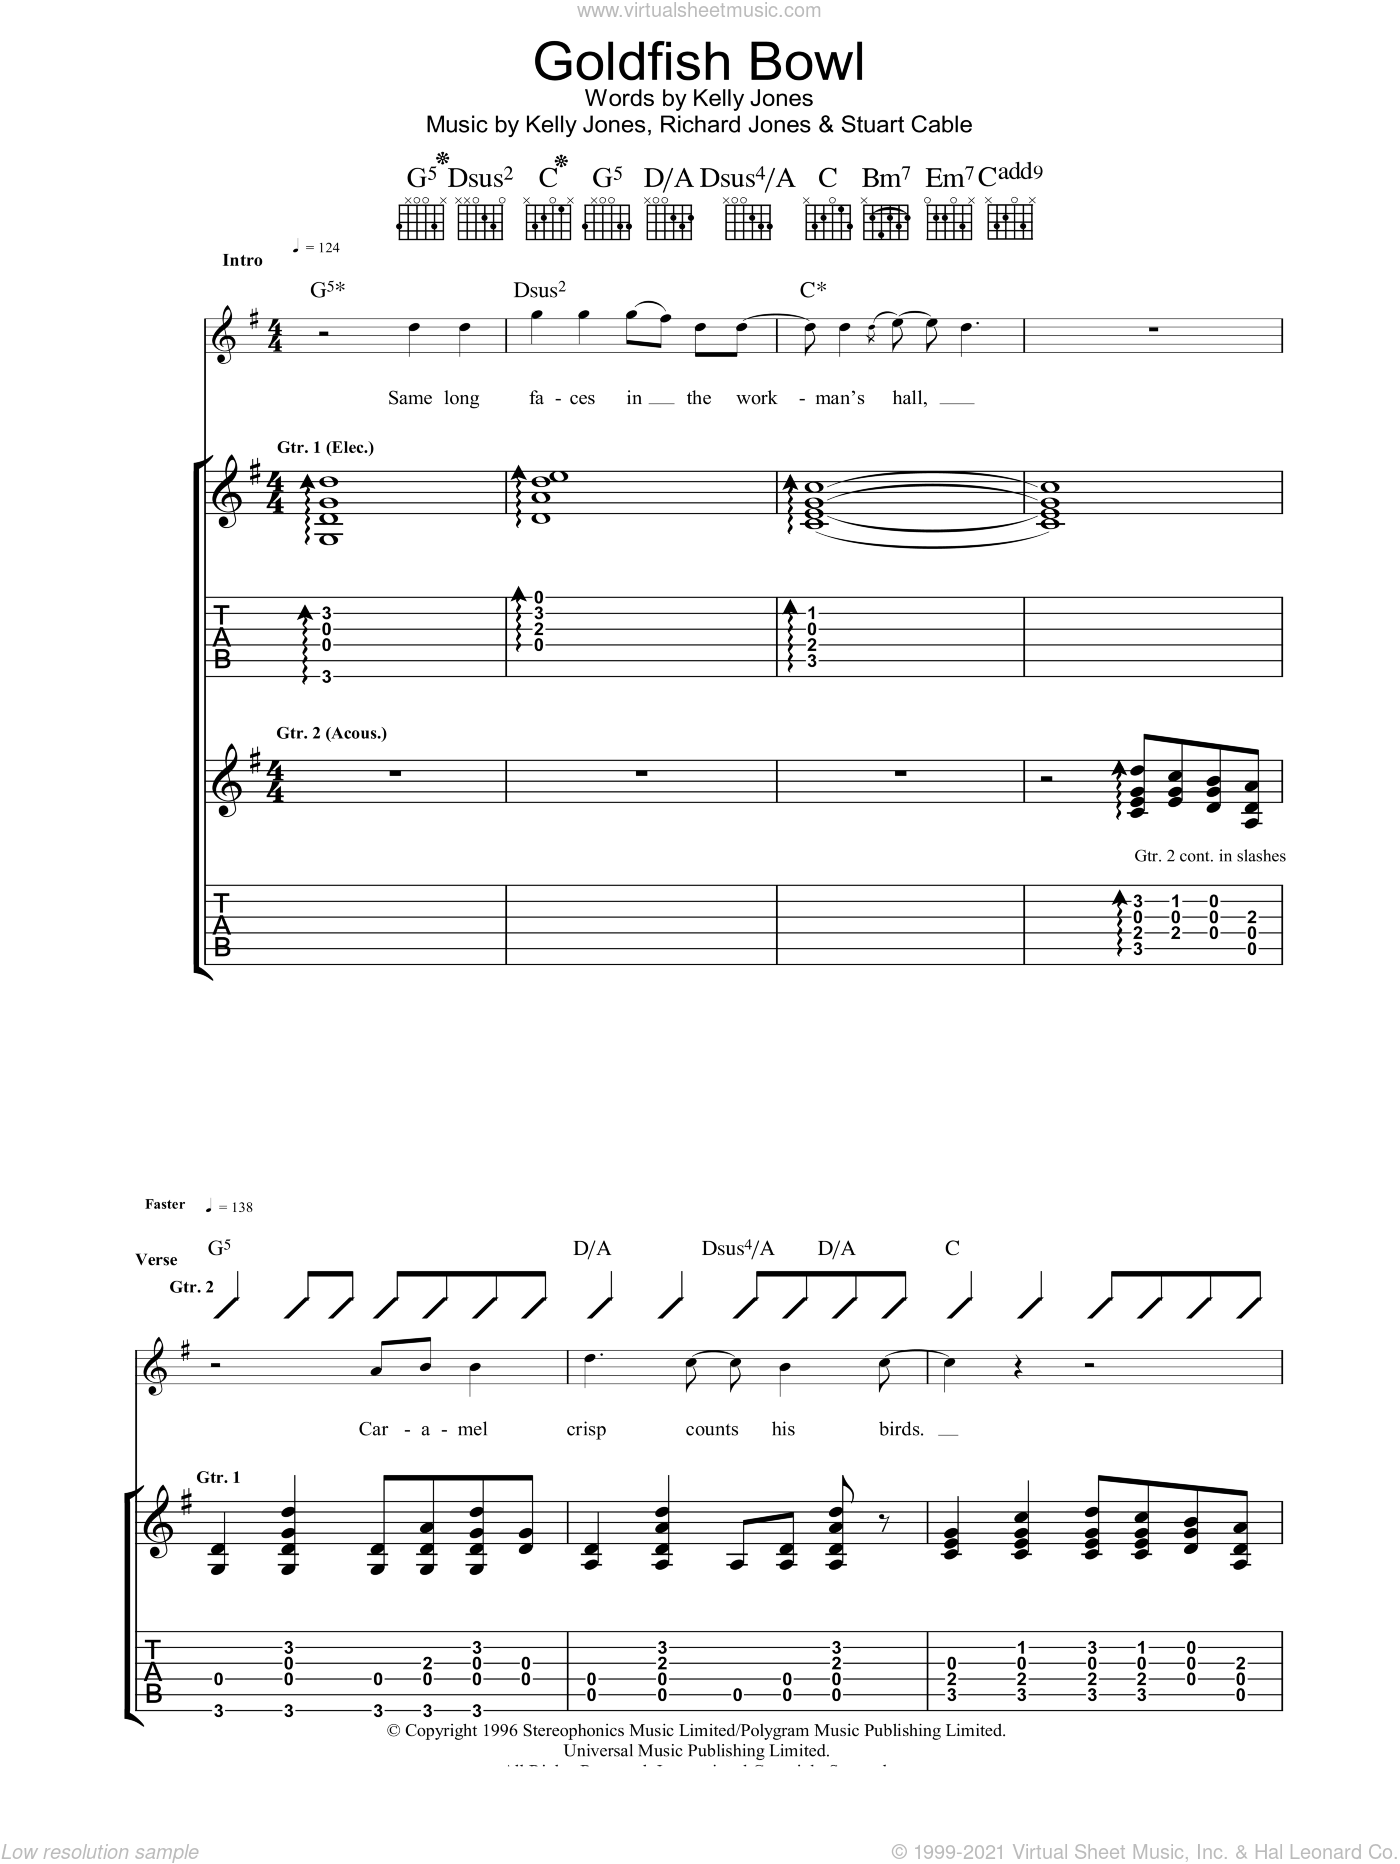 Goldfish Bowl sheet music for guitar (tablature) by Stuart Cable, Stereophonics, Kelly Jones and Richard Jones